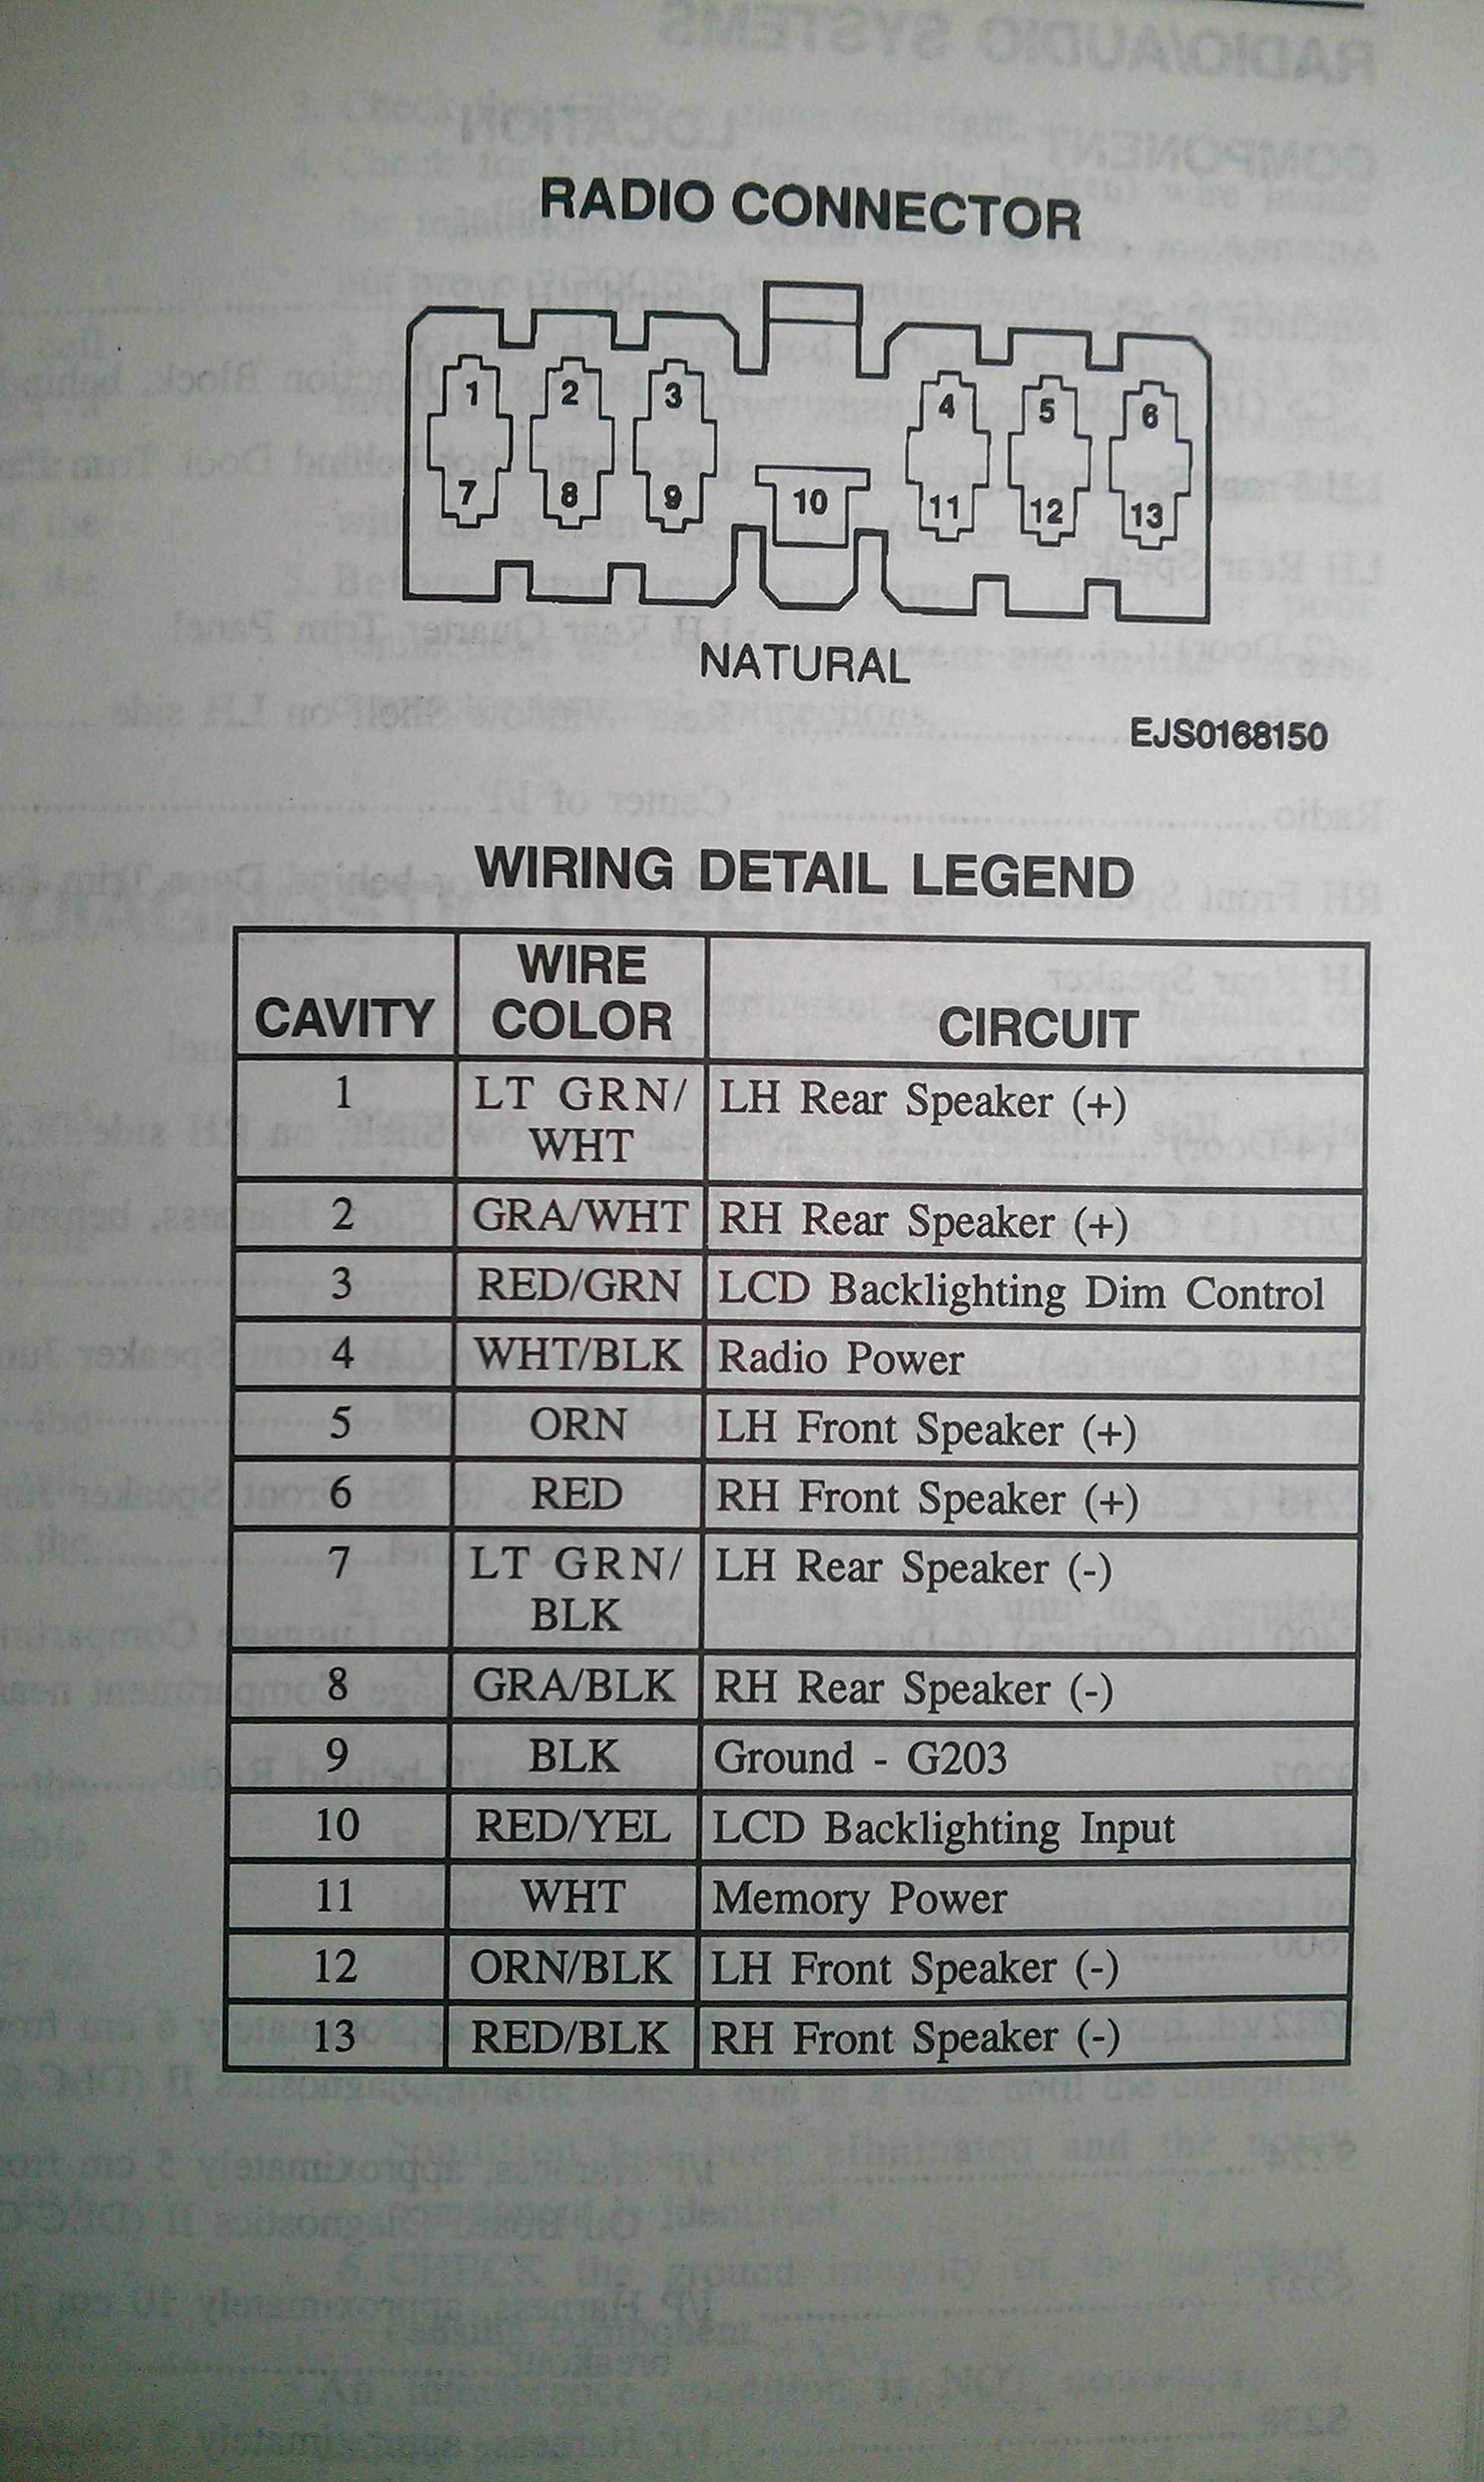 1998 Chevy Tracker Stereo Wiring Diagram - Wiring Diagram